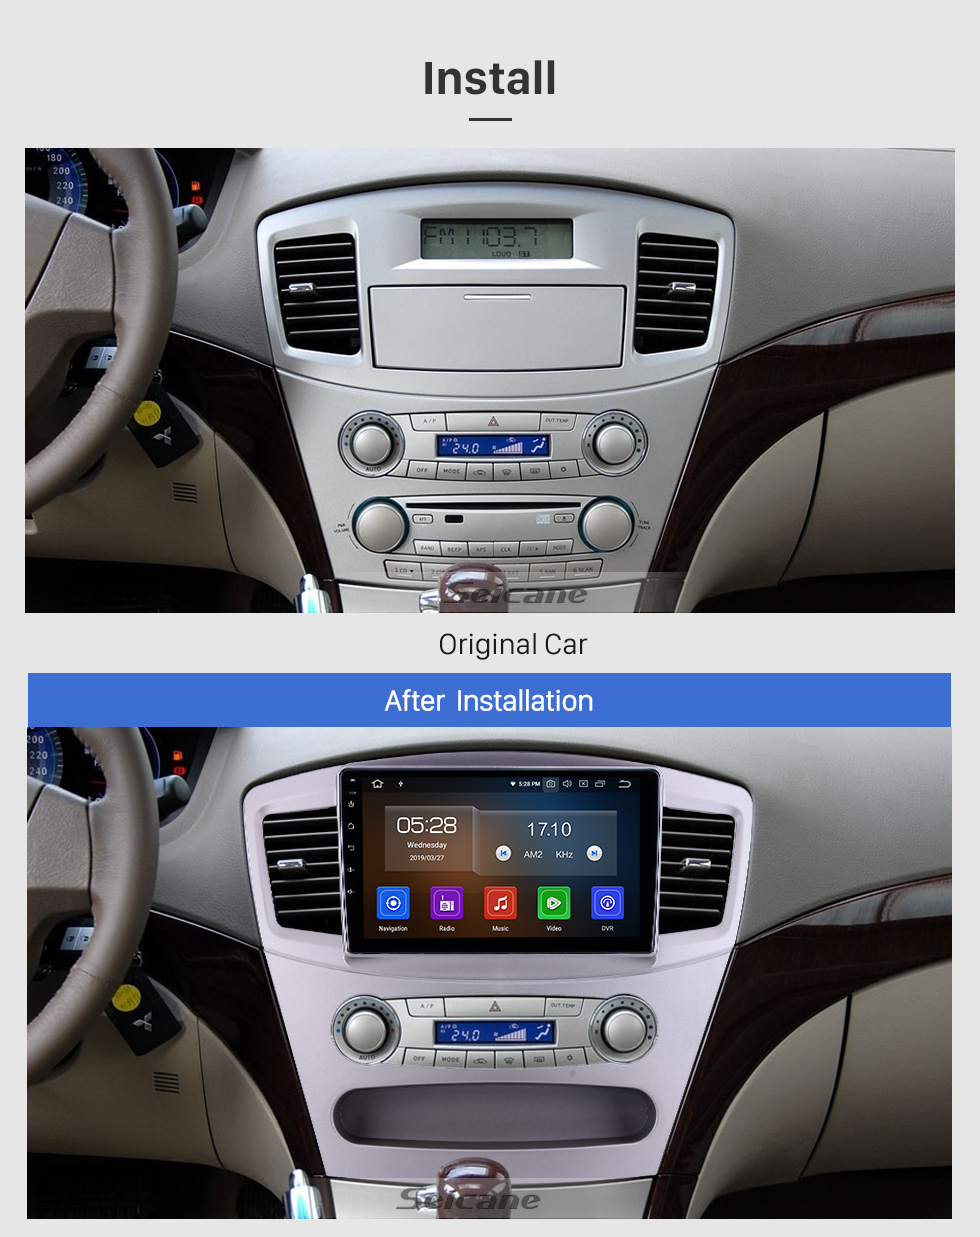 Seicane HD Touchscreen 9 inch for 2010 Mitsubishi Galant Radio Android 10.0 GPS Navigation System Bluetooth Carplay support DSP DVR